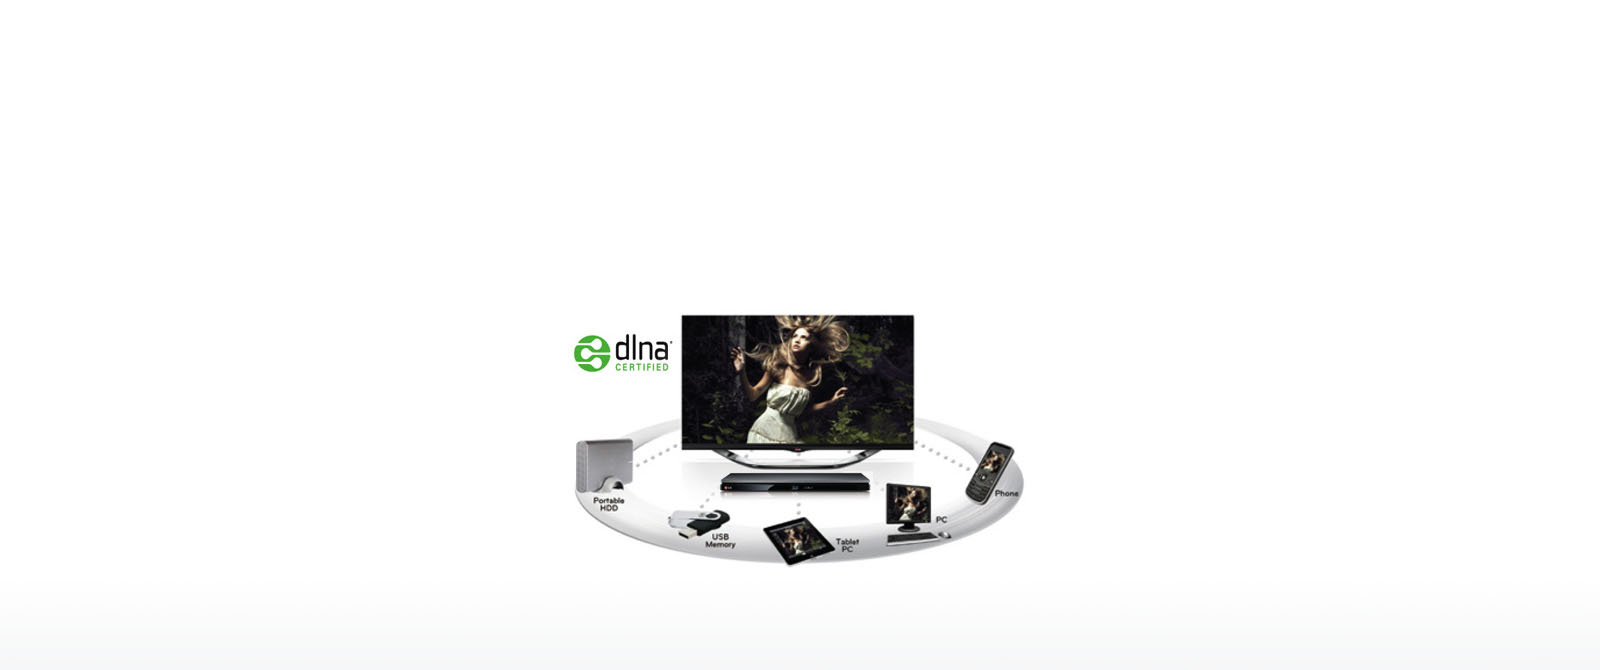 3d blu ray disc player bp530 walmart oled tvs unmatched color realism sciox Image collections